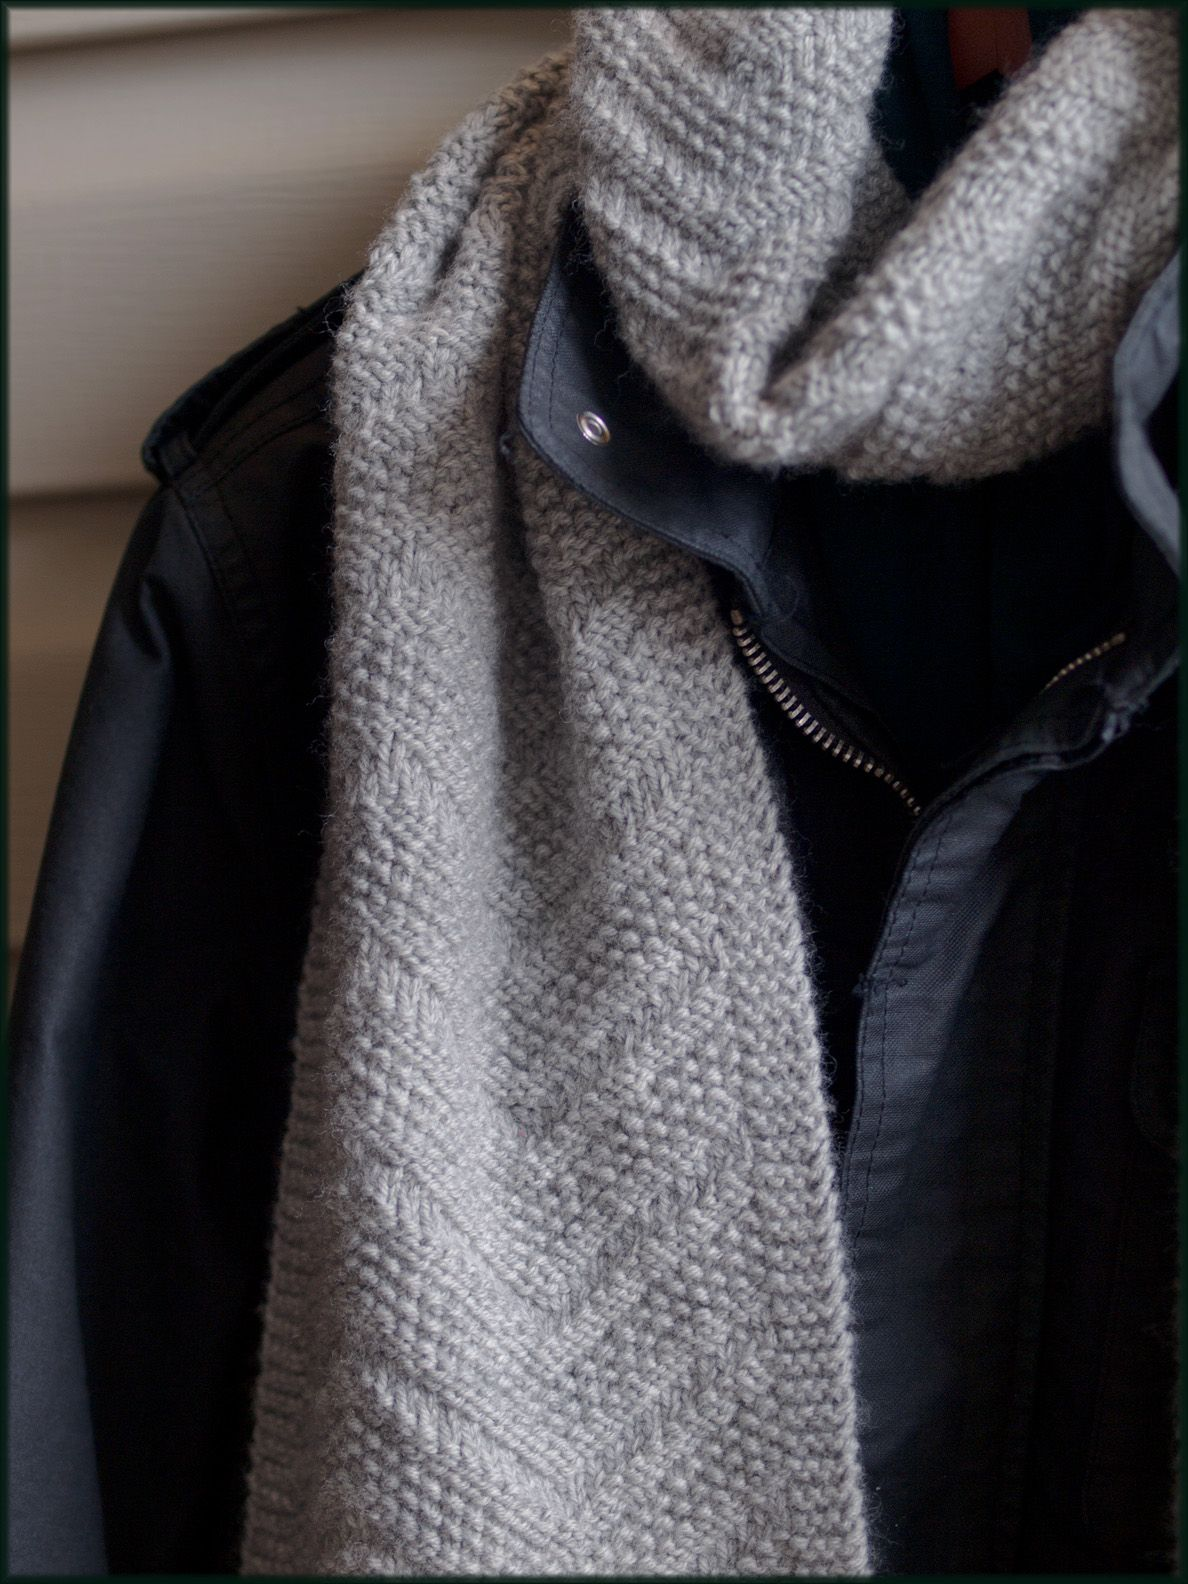 Beckenham Scarf | Knit patterns, Patterns and Knitting designs